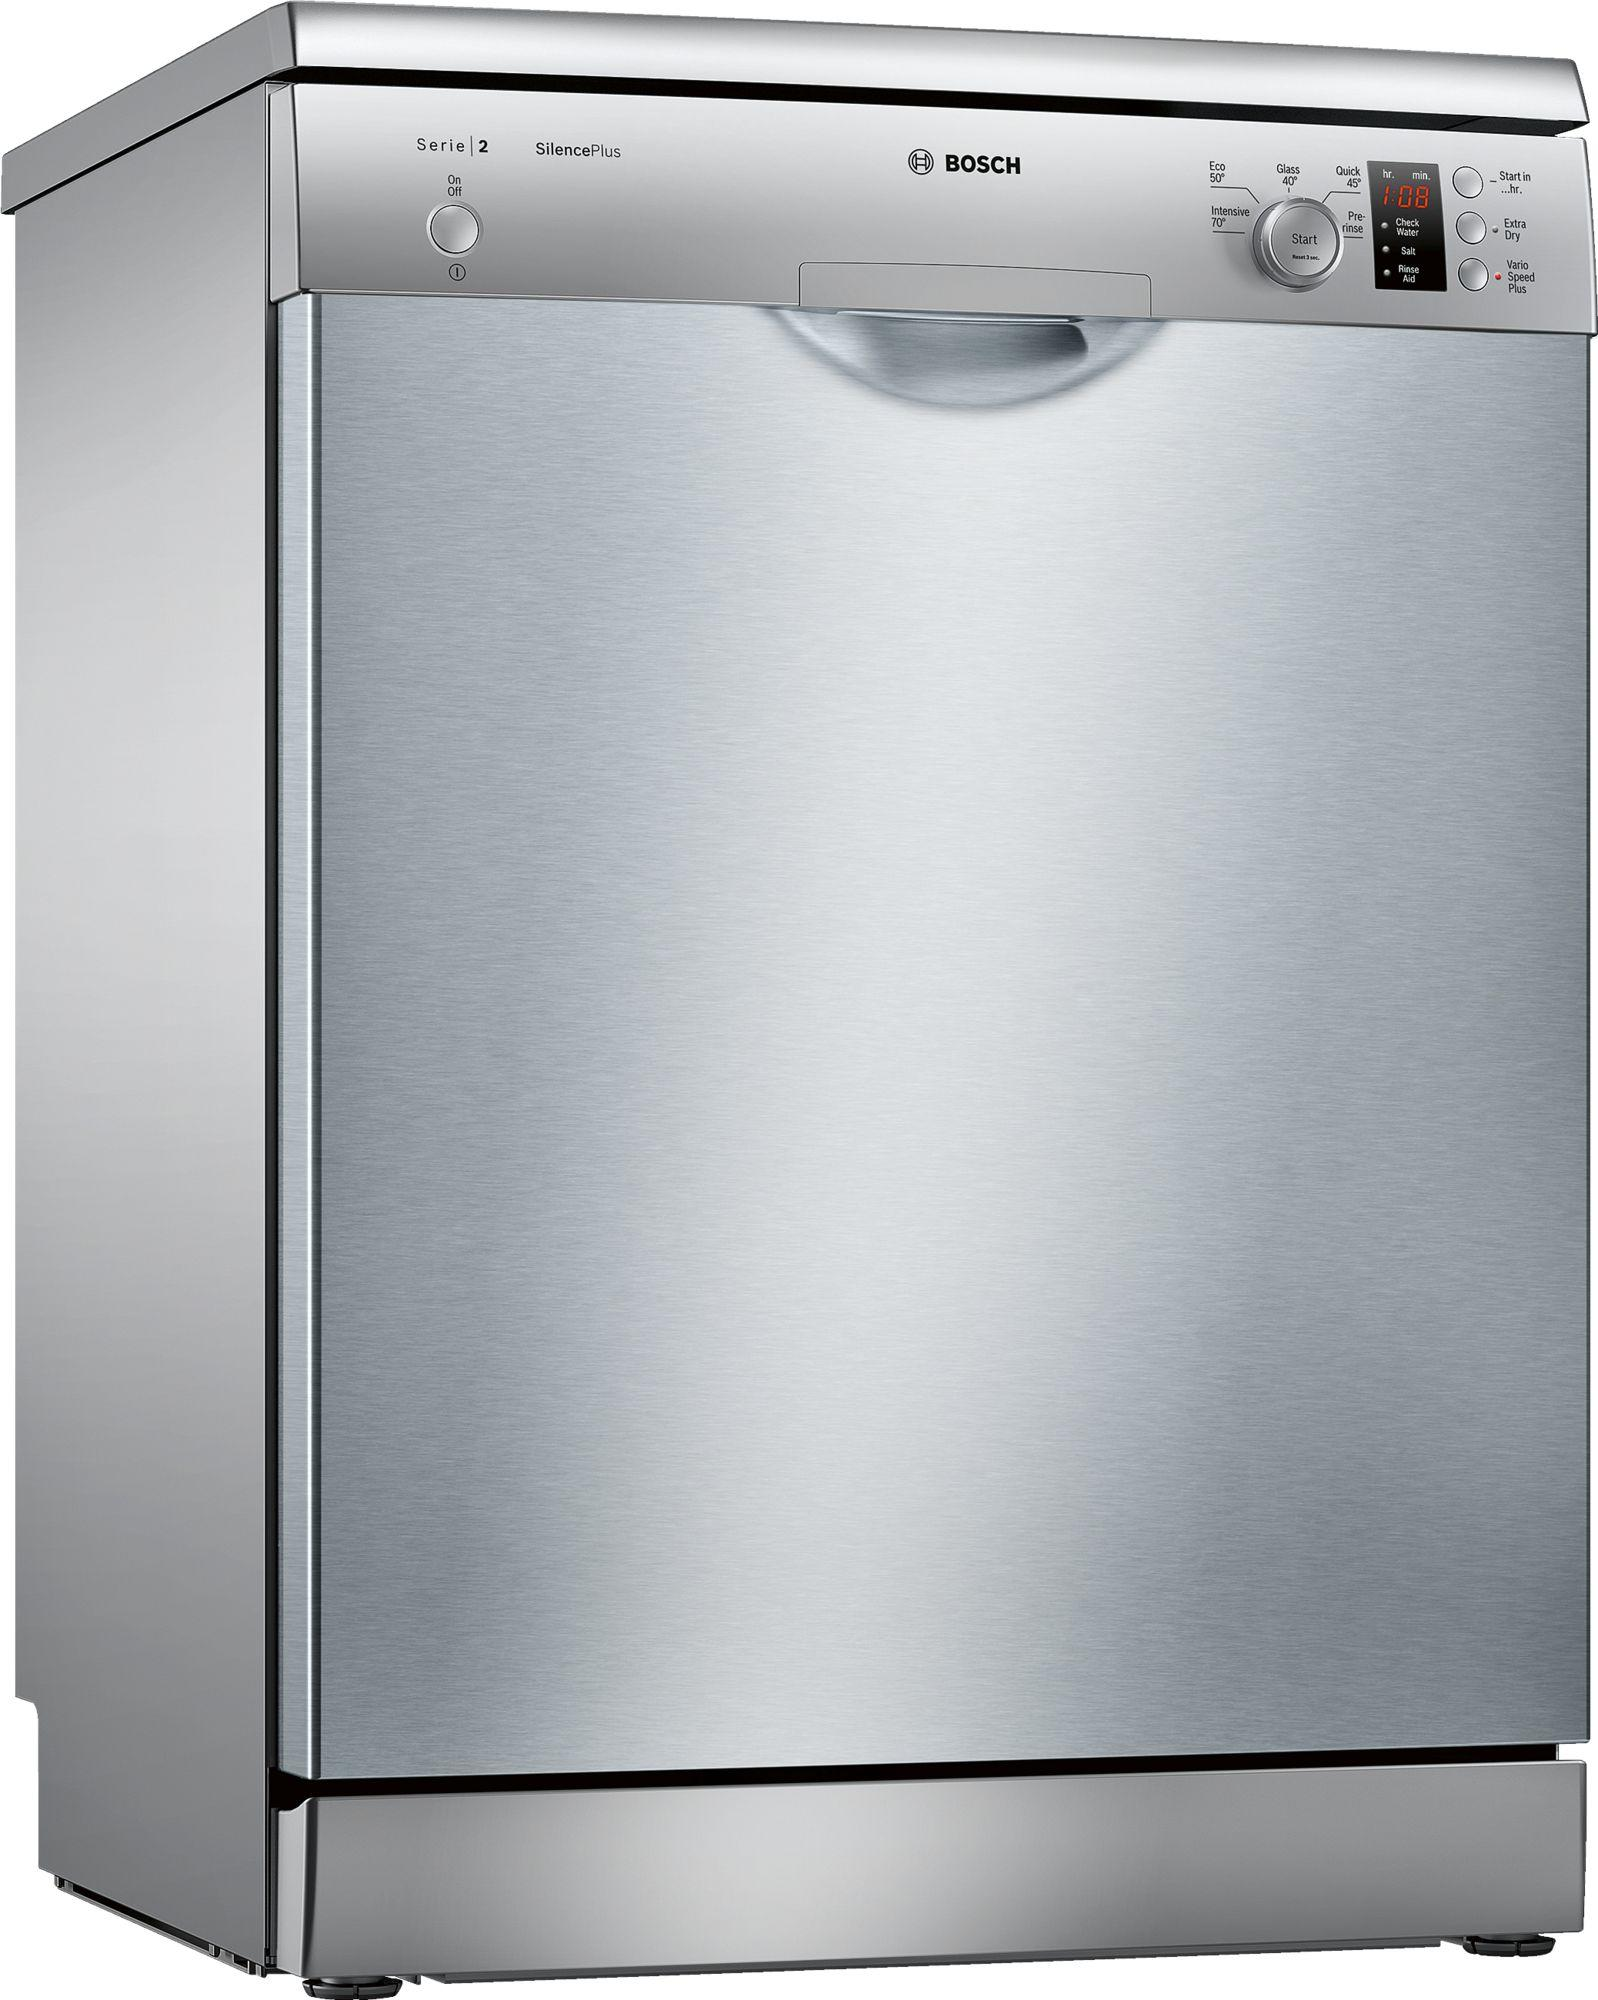 Image of Serie 2 SMS25AI00G 60cm A++ Standard Dishwasher   Silver Inox